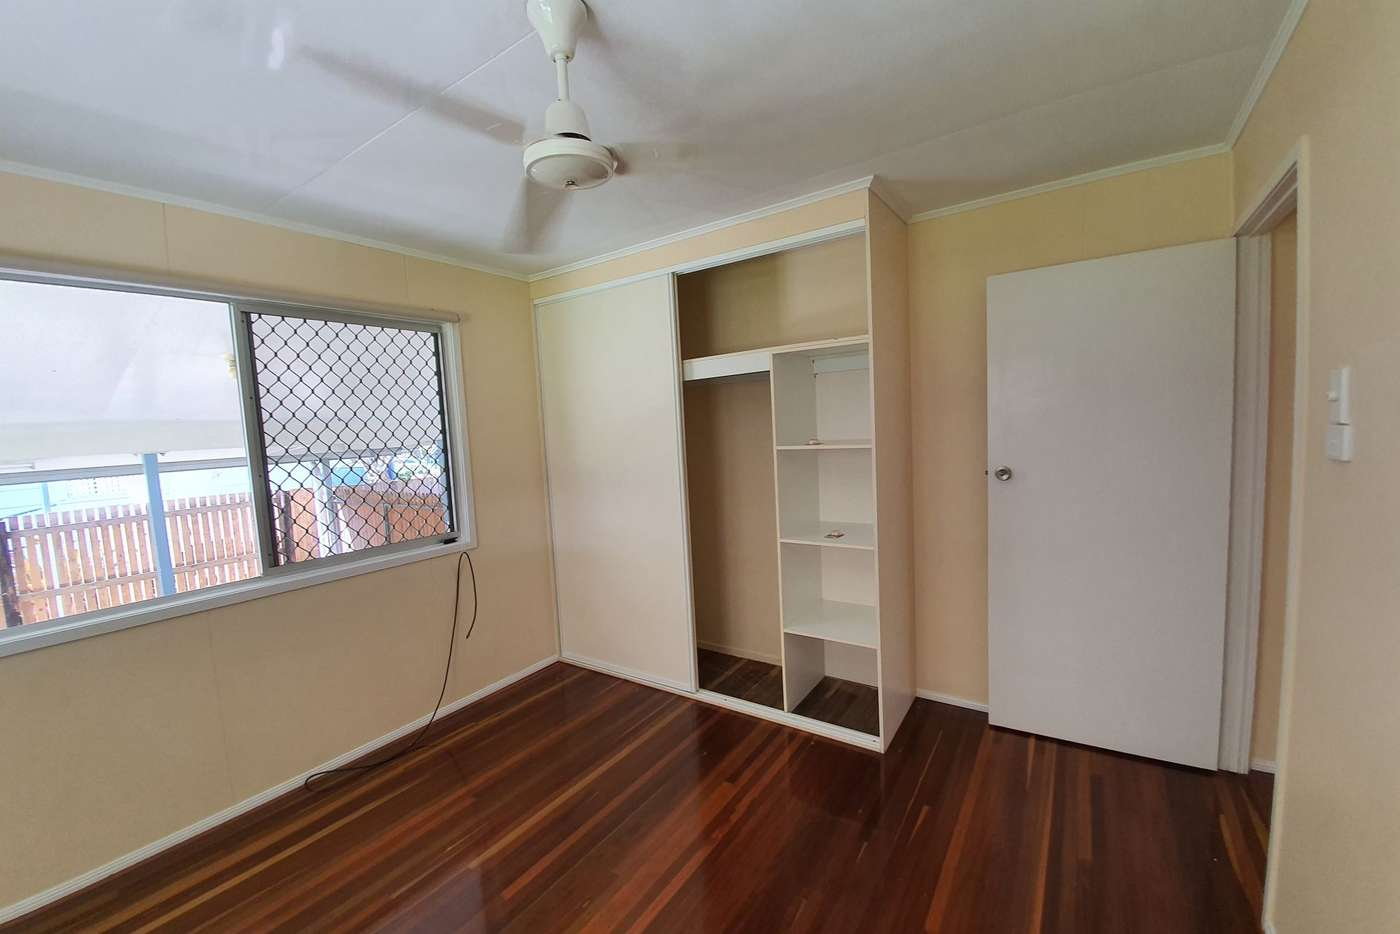 Seventh view of Homely house listing, 25 Enmore Street, Manoora QLD 4870